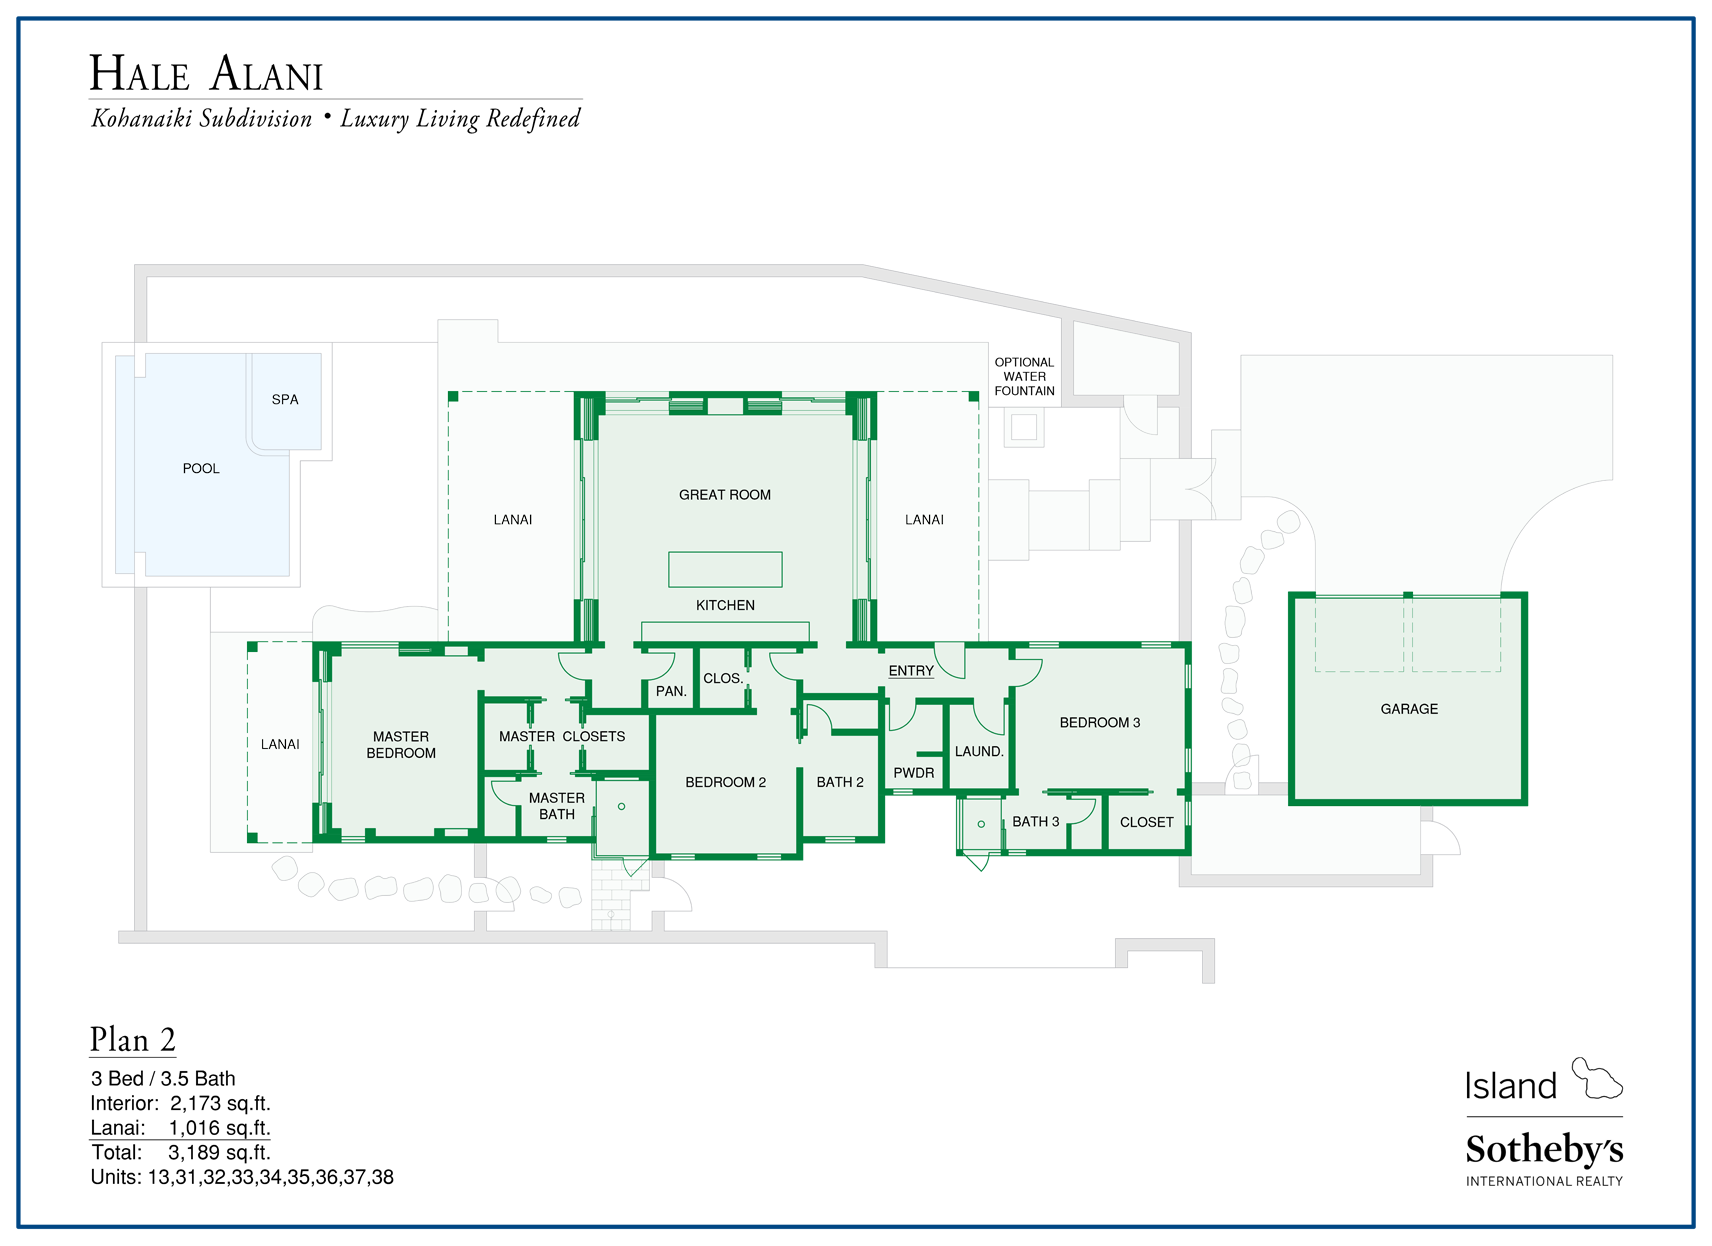 hale alani floorplan on Big Island HI